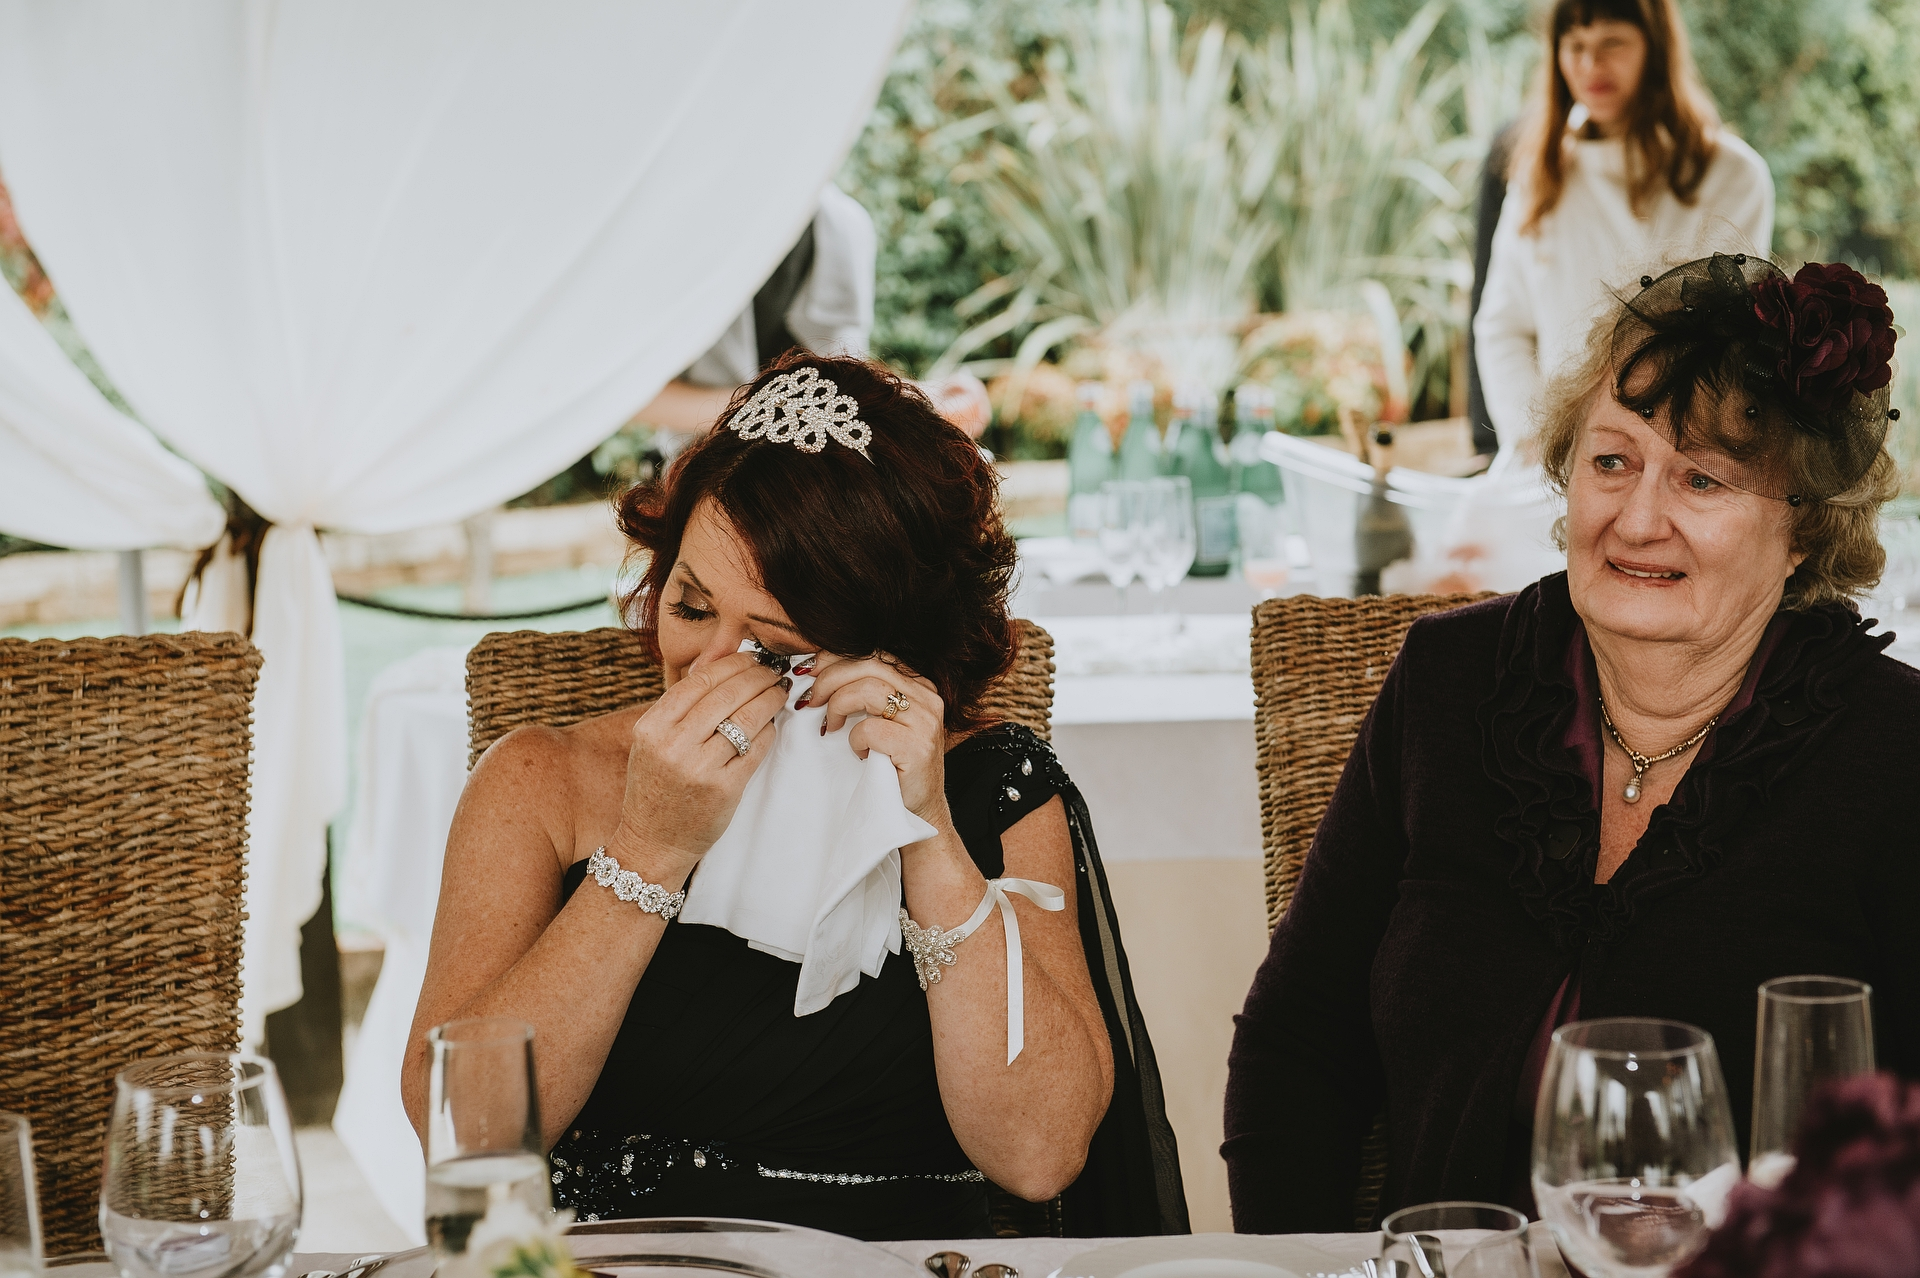 Elopement Image from Venice - Osteria al Ponte del Diavolo - Torcello | After the husband's emotional speech